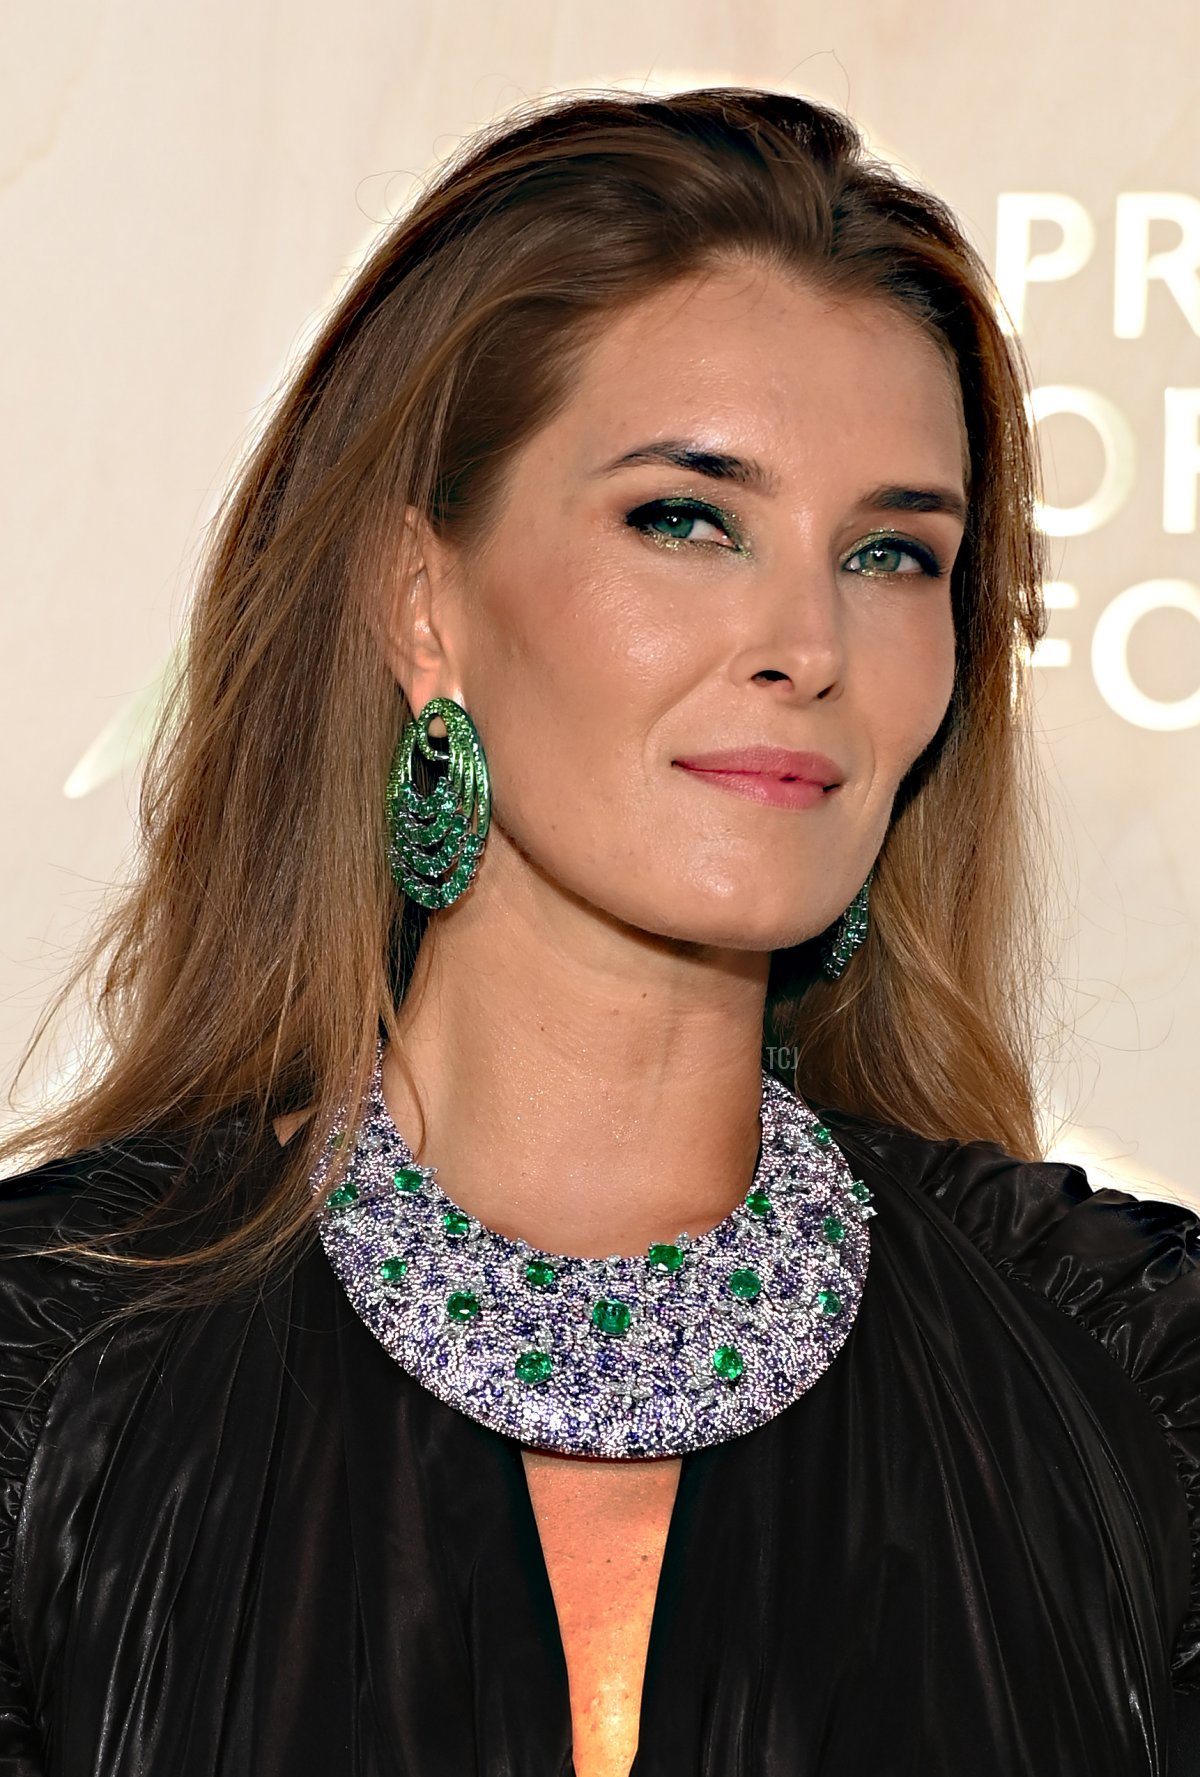 Anata Dite, wearing a Fawaz Gruosi necklace, attends the 5th Monte-Carlo Gala For Planetary Health on September 23, 2021 in Monte-Carlo, Monaco